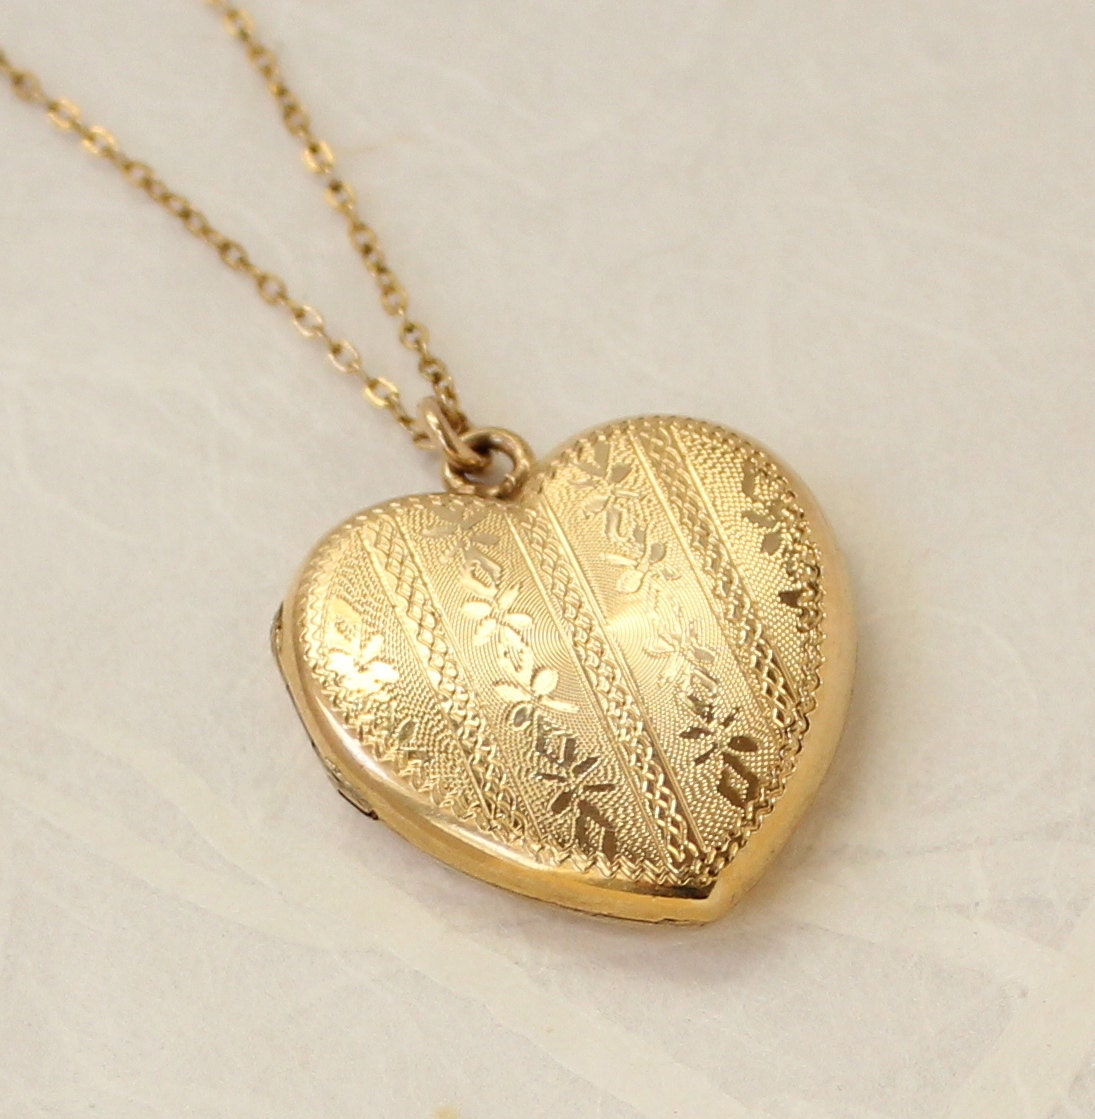 gold heart shaped locket necklace jewelry ideas. Black Bedroom Furniture Sets. Home Design Ideas